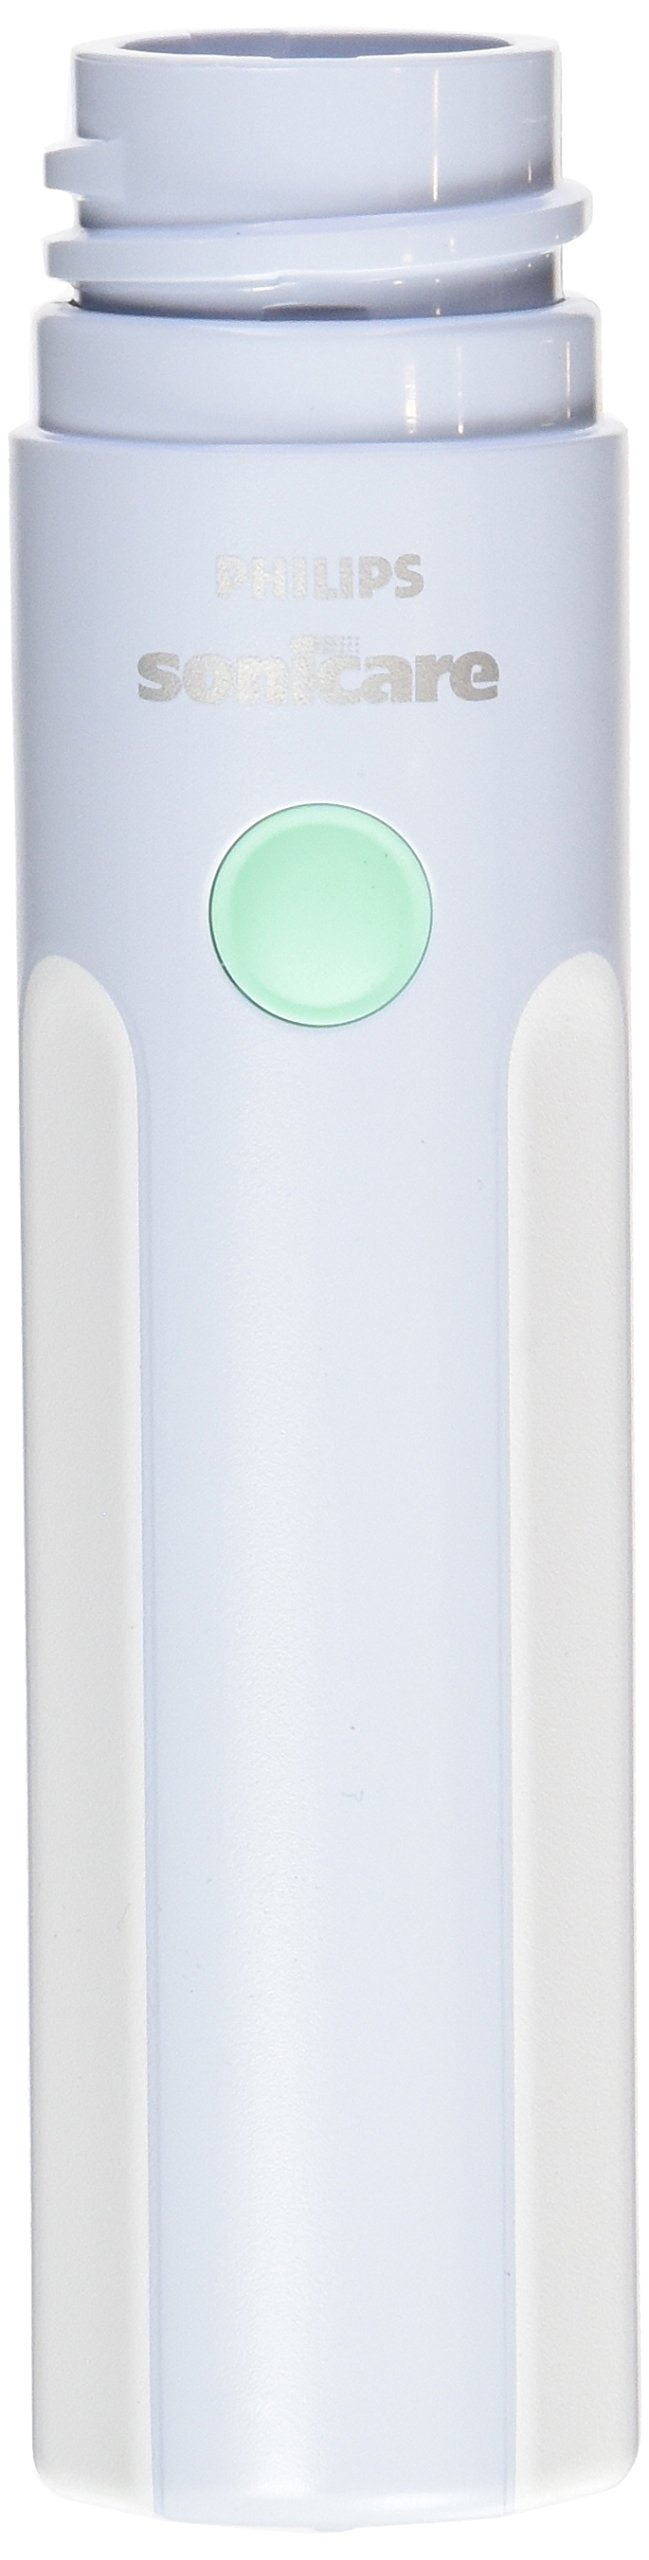 Philips Sonicare Essence HX5810 HX5910 Rechargeable Toothbrush Handle